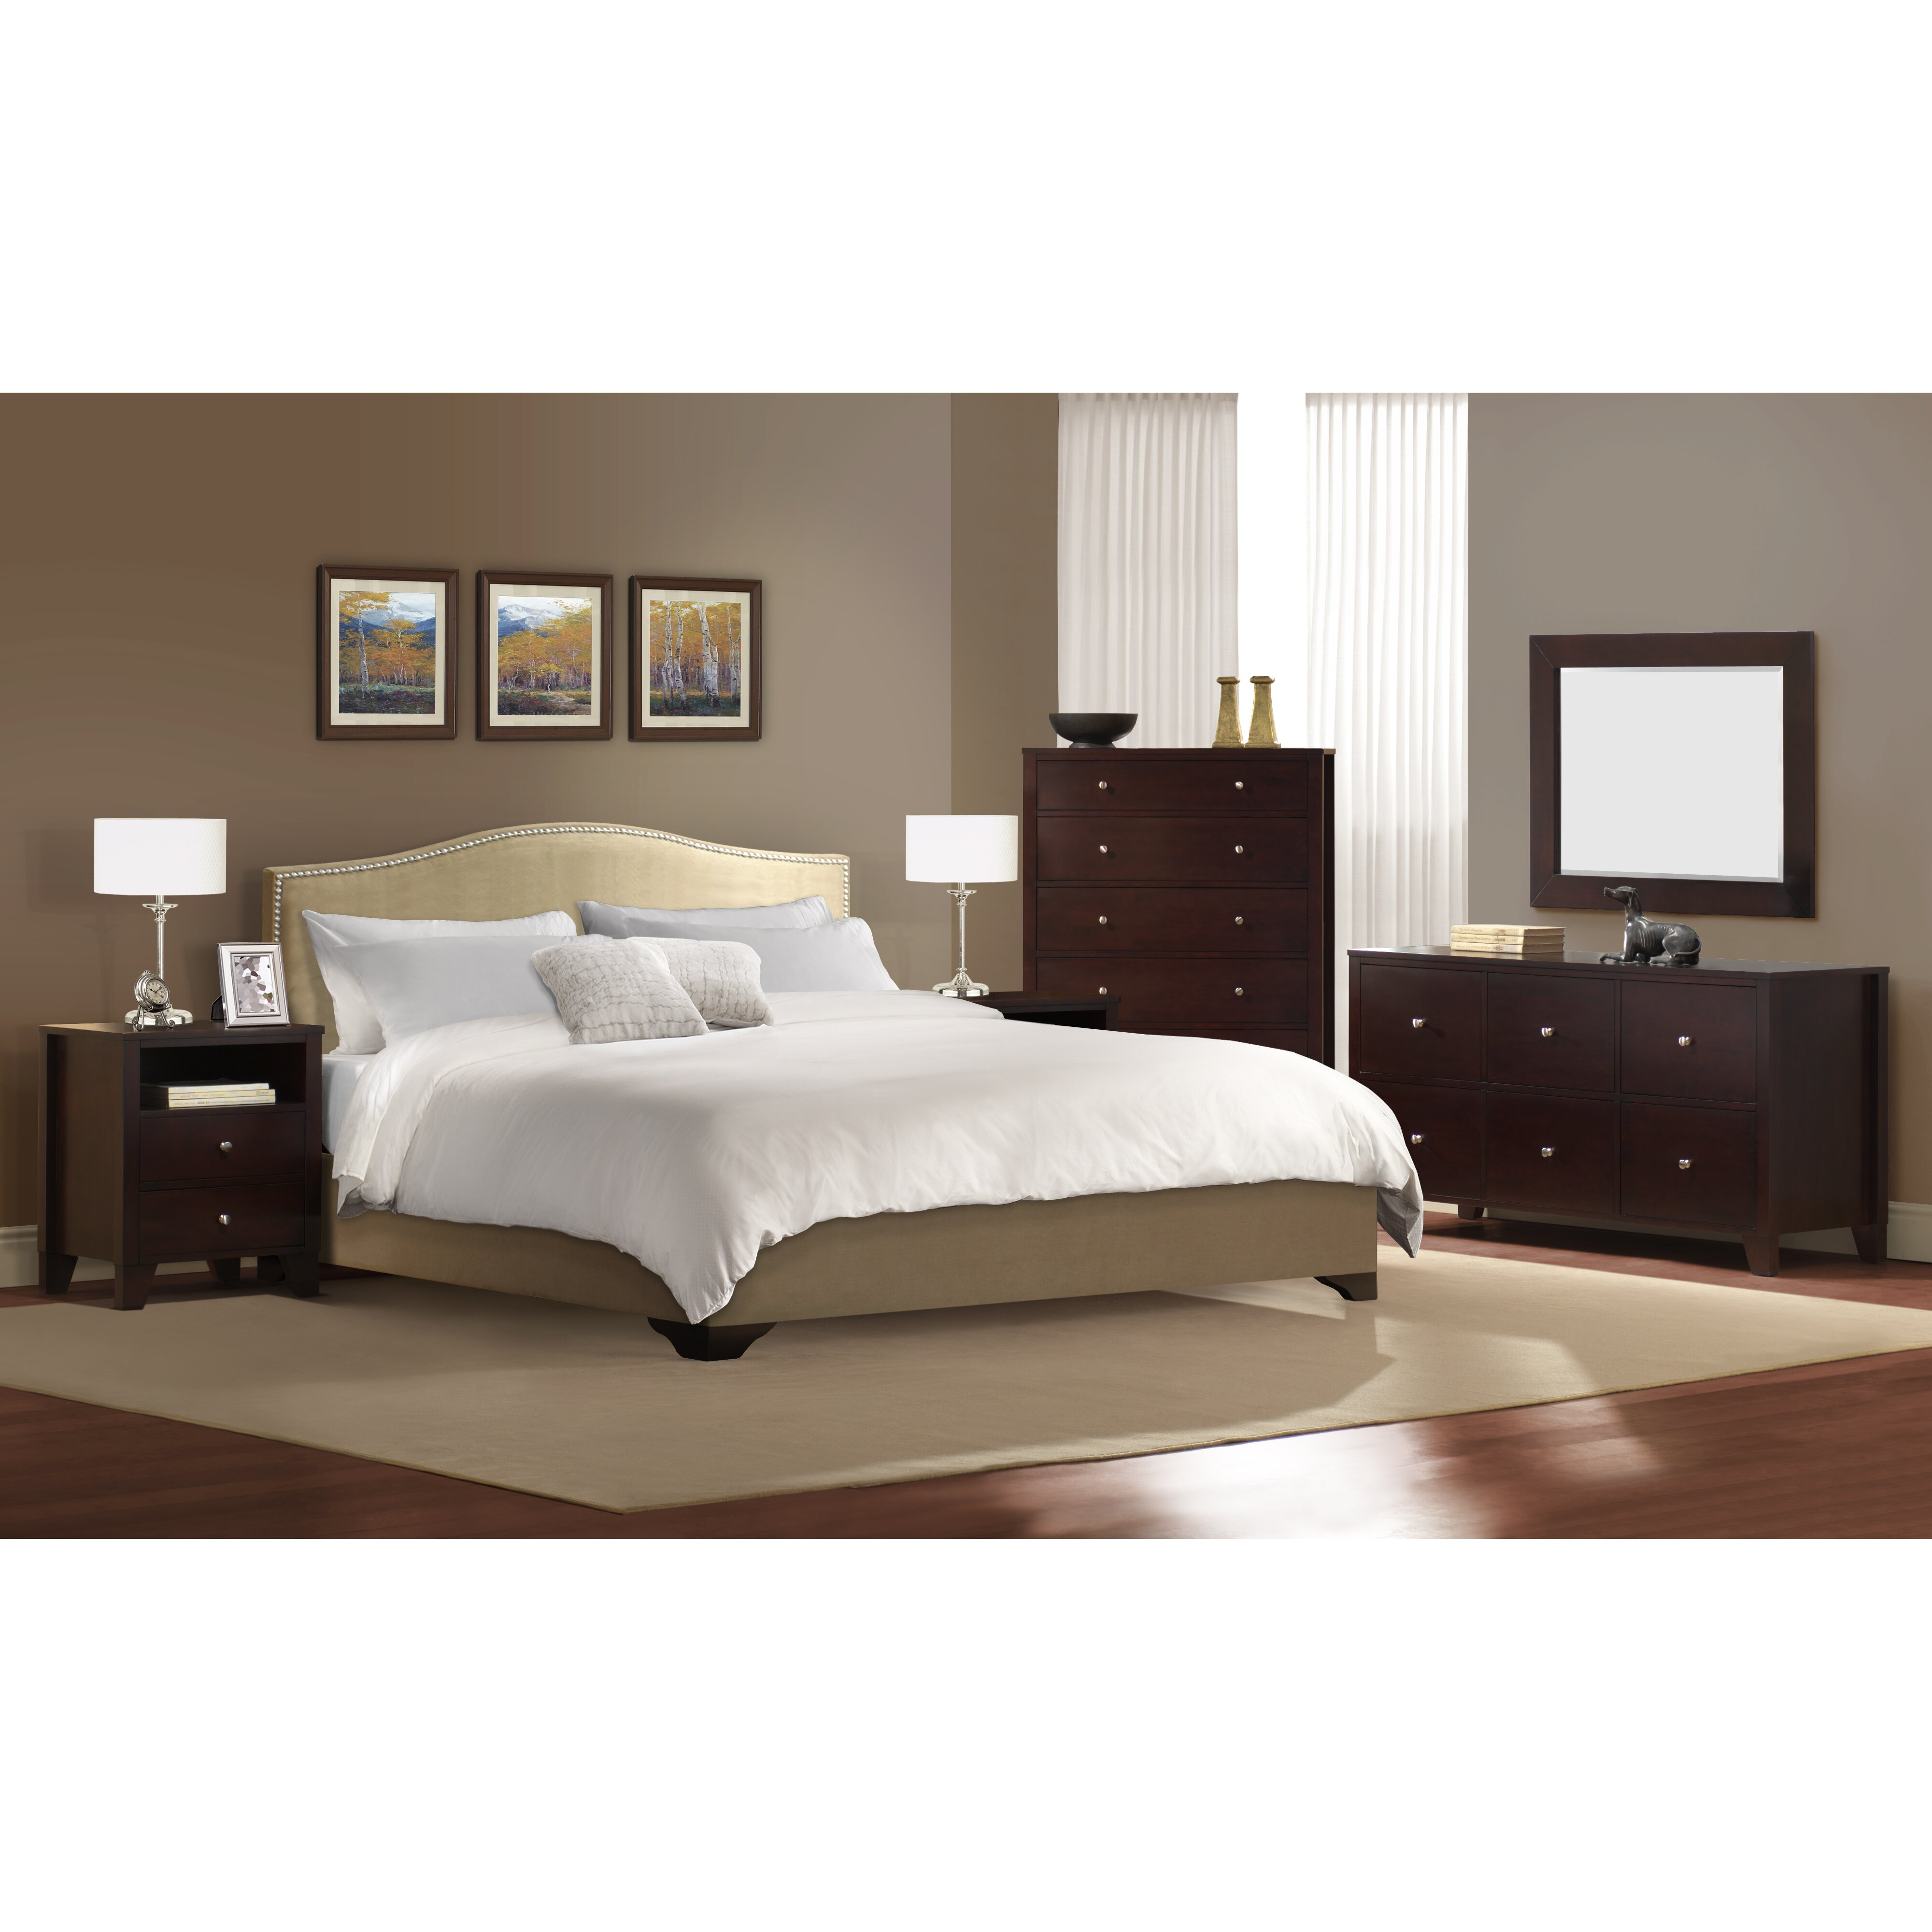 5 Piece Bedroom Set. Visions 5piece Silver Gold Champagne Finish ...